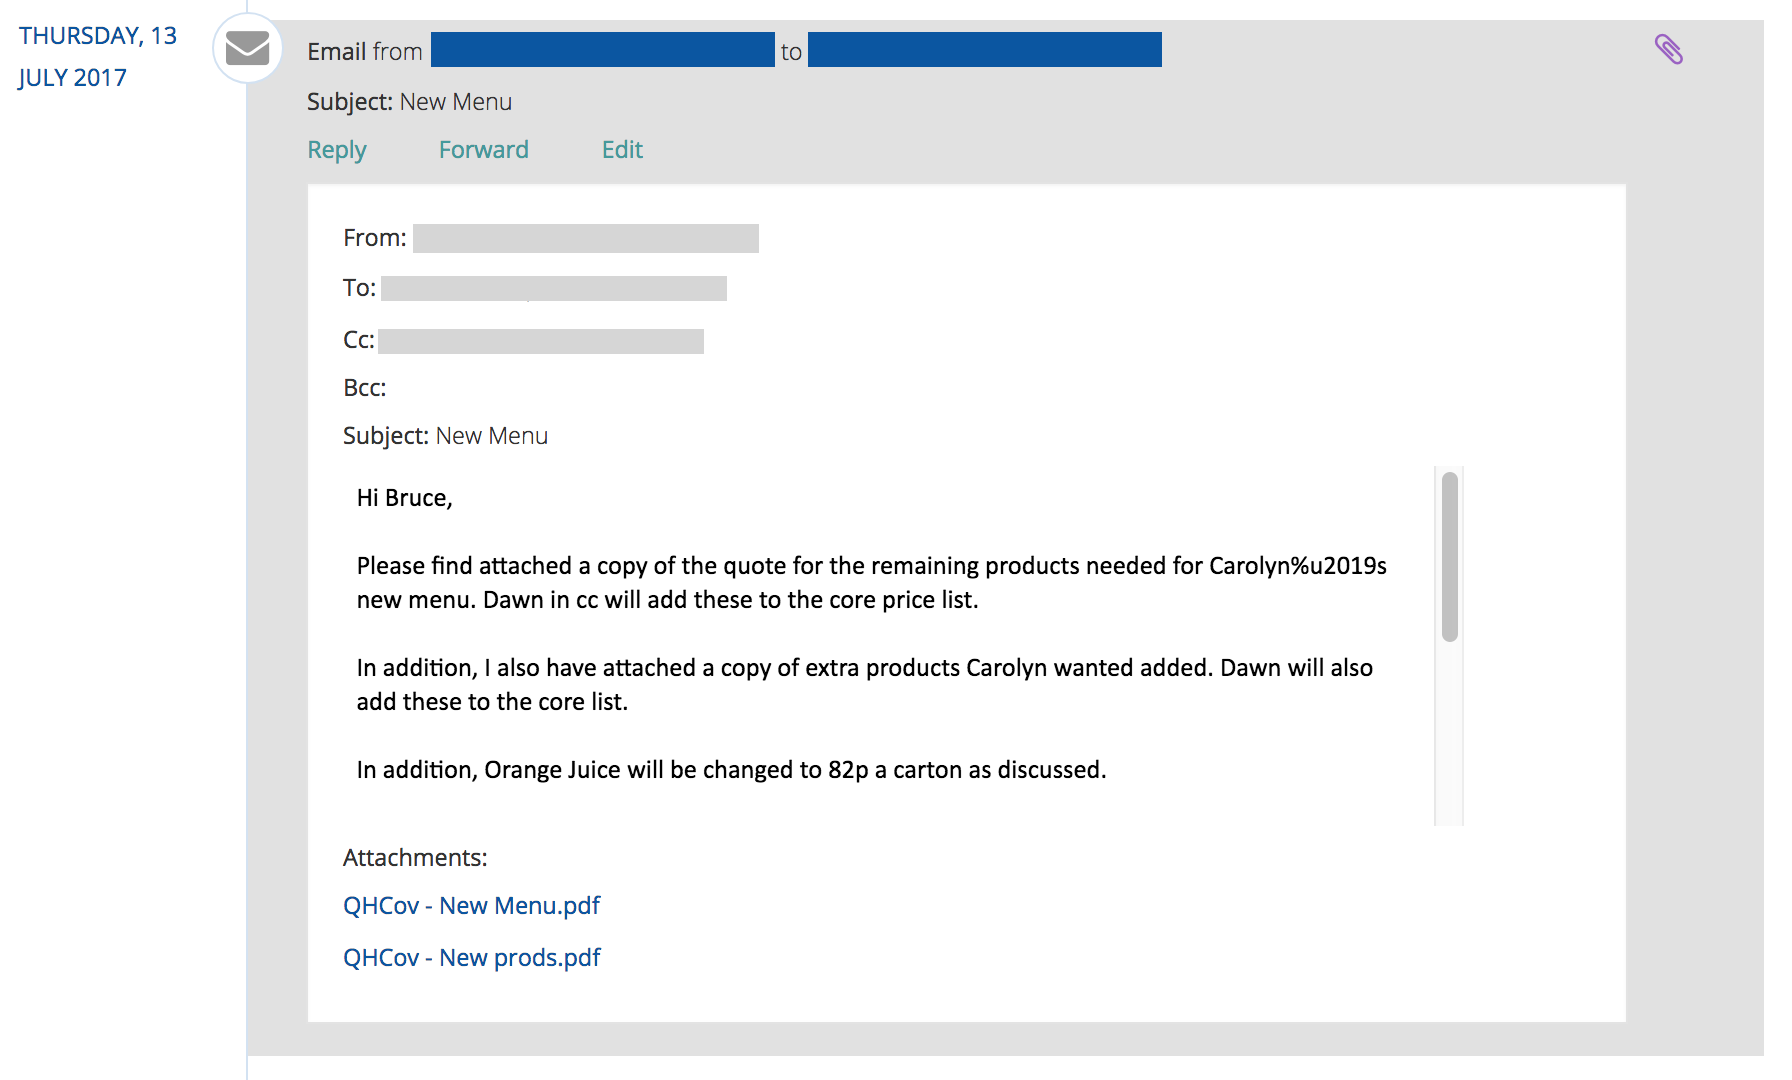 buddycrm email with attachments